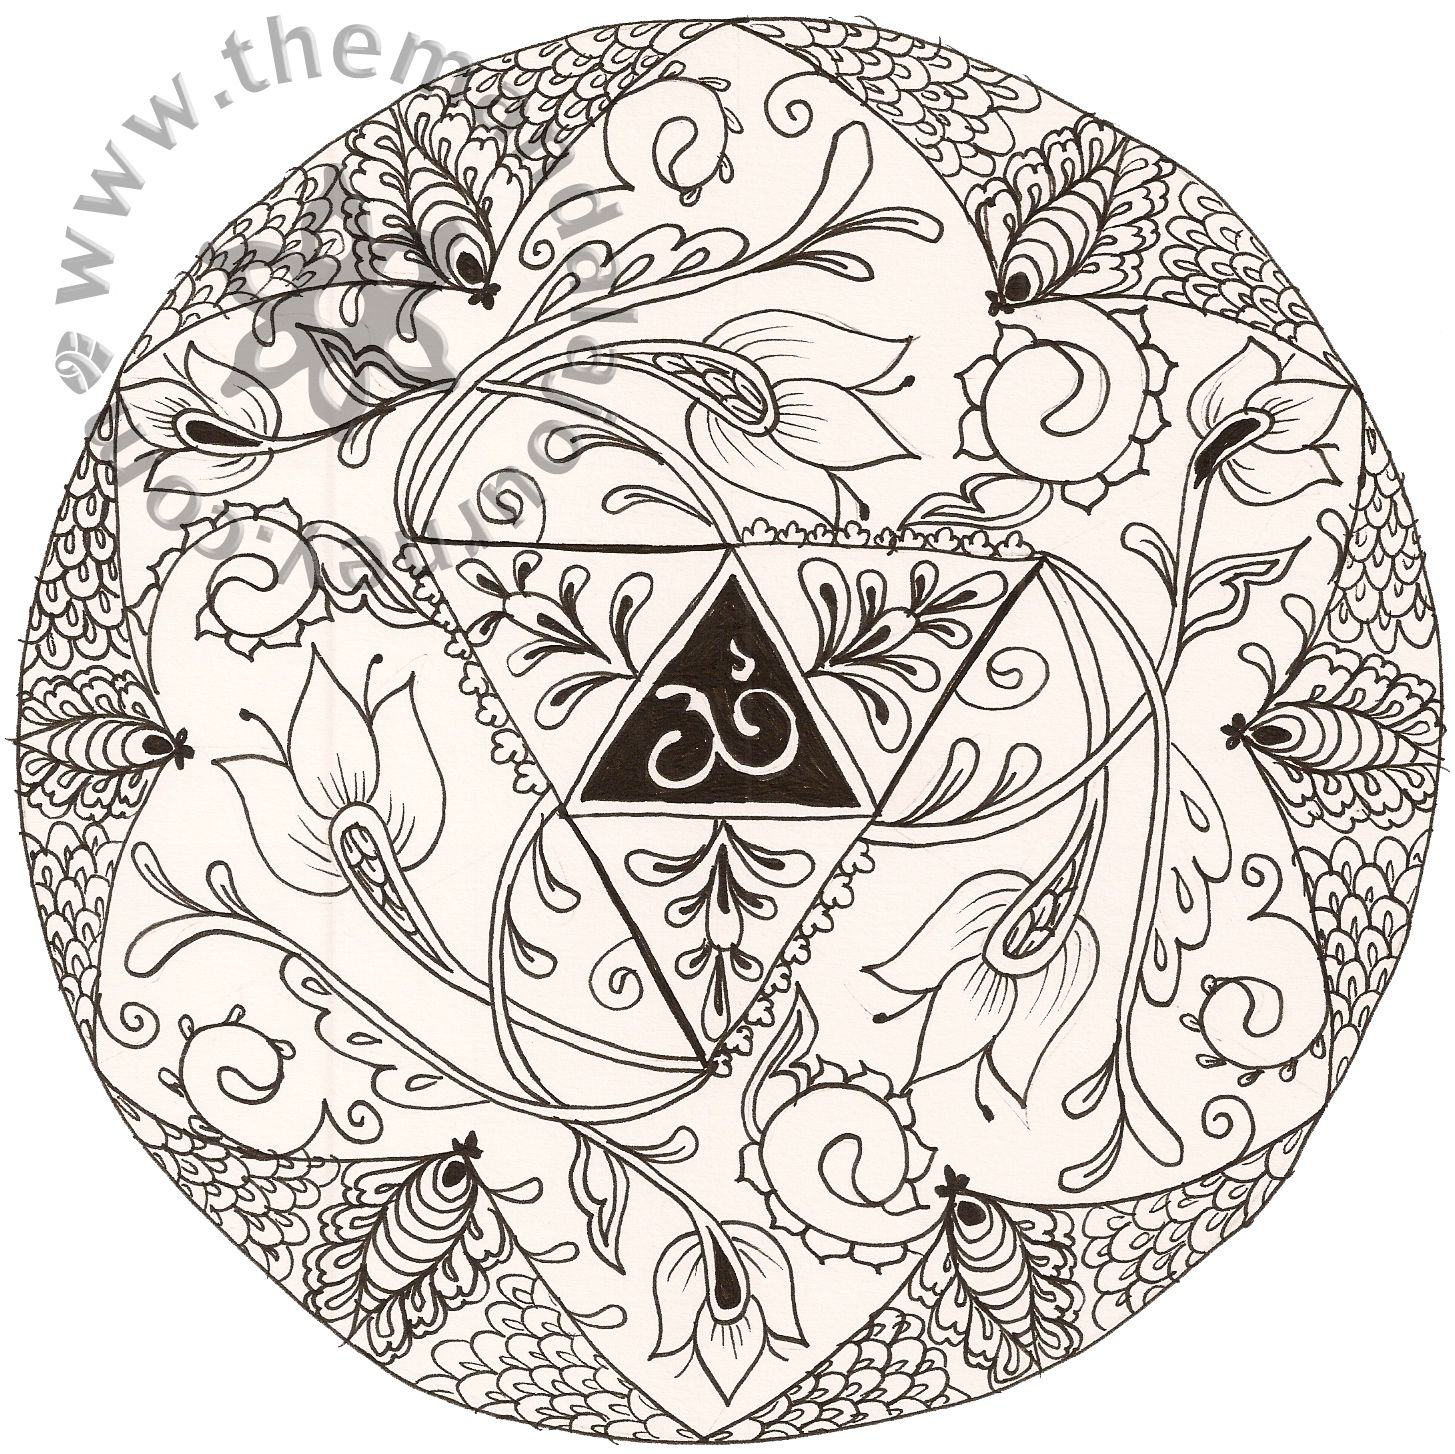 Lotus designs coloring book - Free Hindu Book Do A Whole Book Of Them That People Could